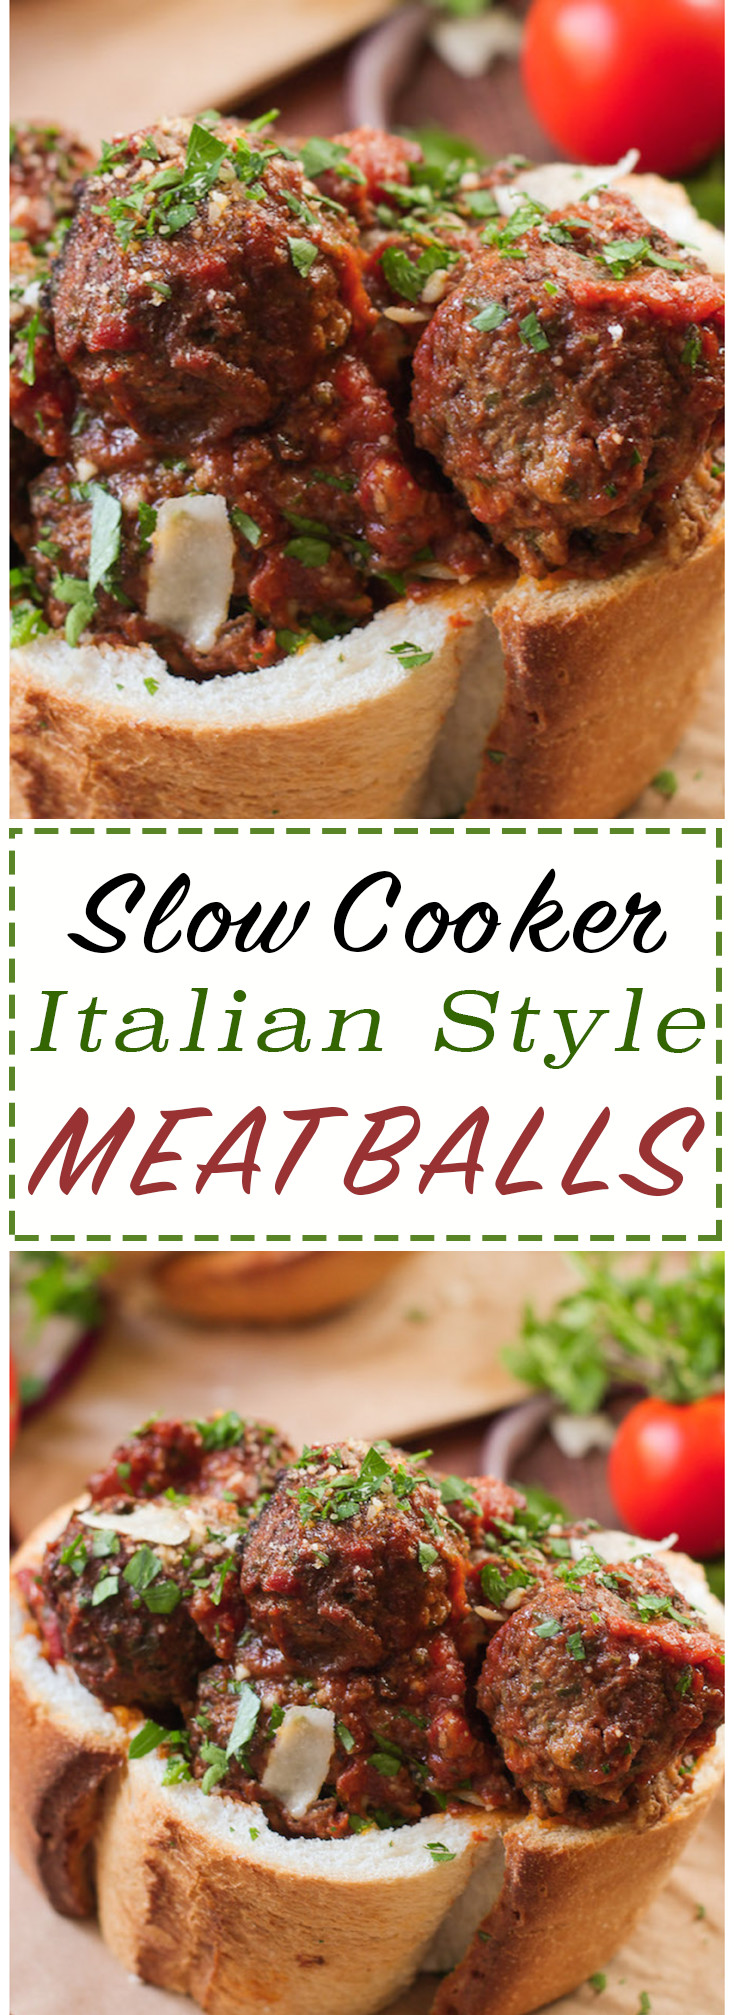 Slow Cooker Italian Meatballs are whole-food friendly, easy, and delicious!